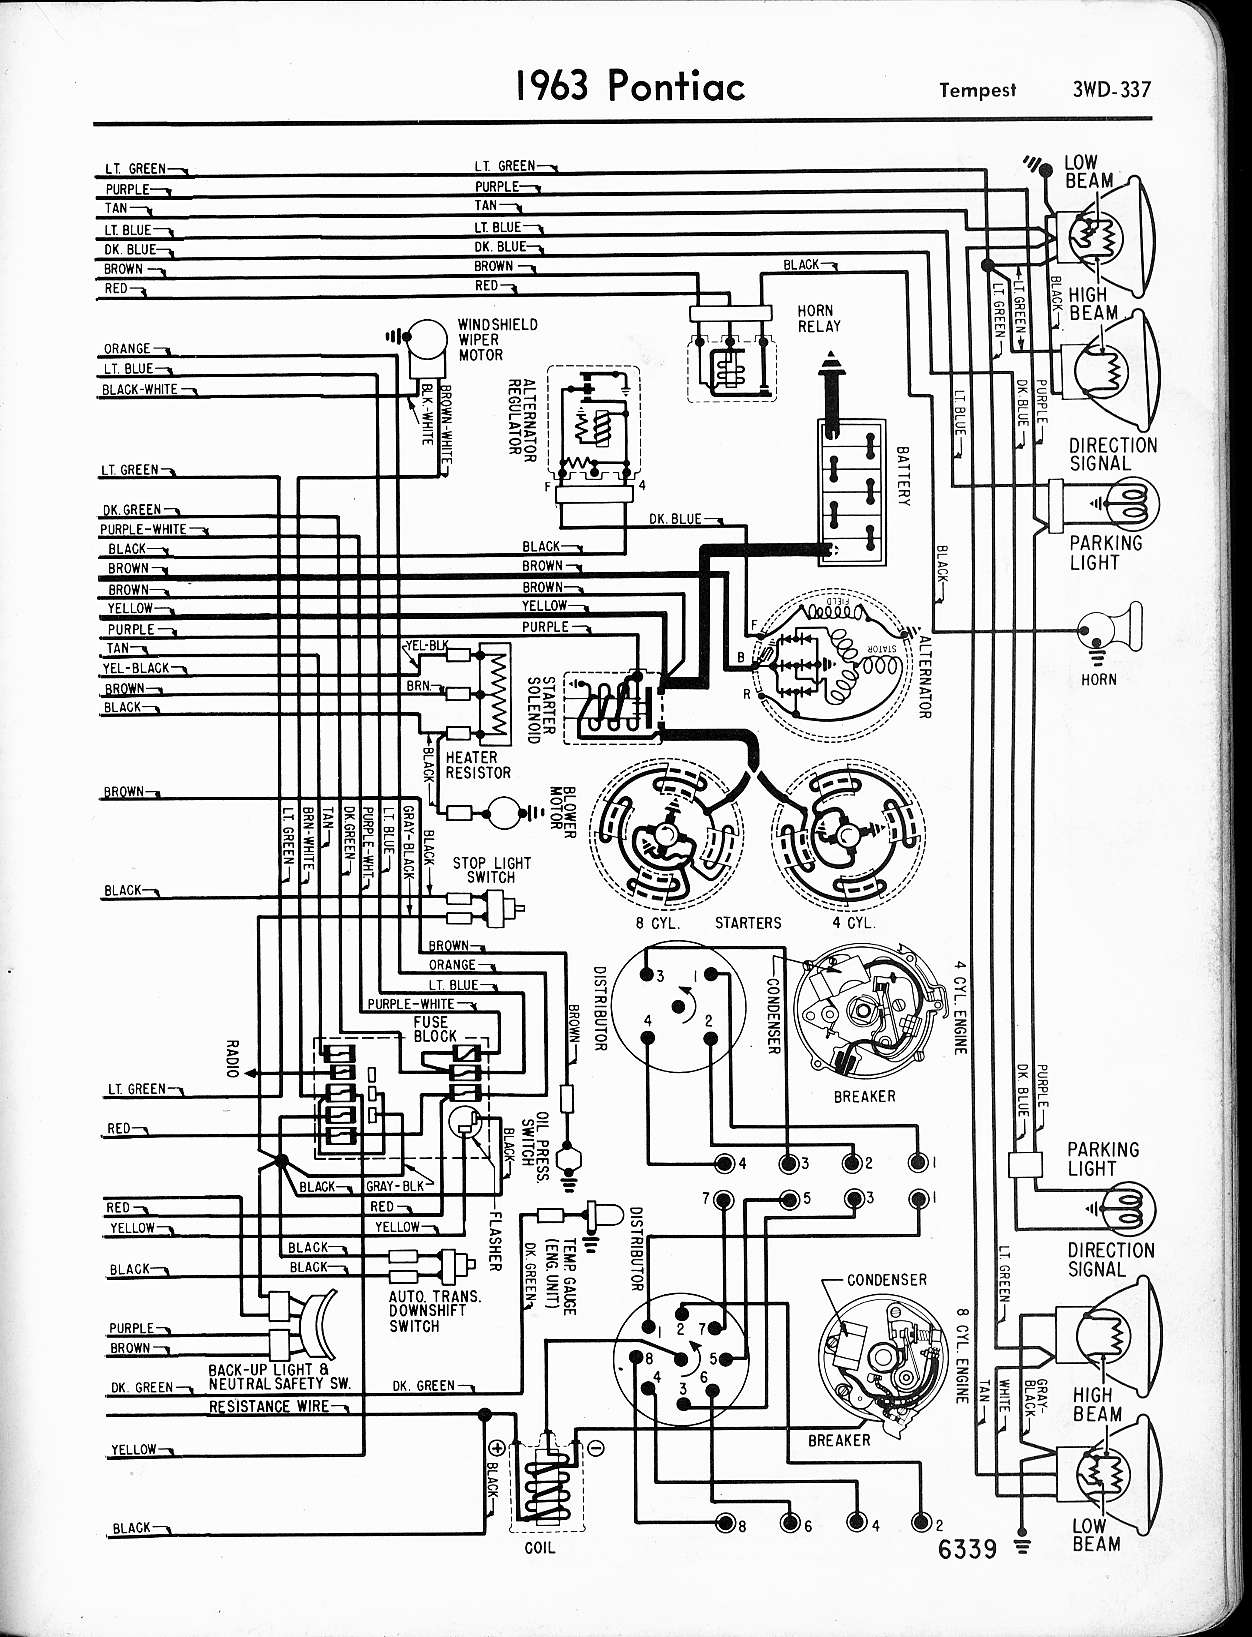 wallace racing wiring diagrams rh wallaceracing com 1966 GTO Wiring-Diagram Blower Moter Light Switch Wiring Diagram